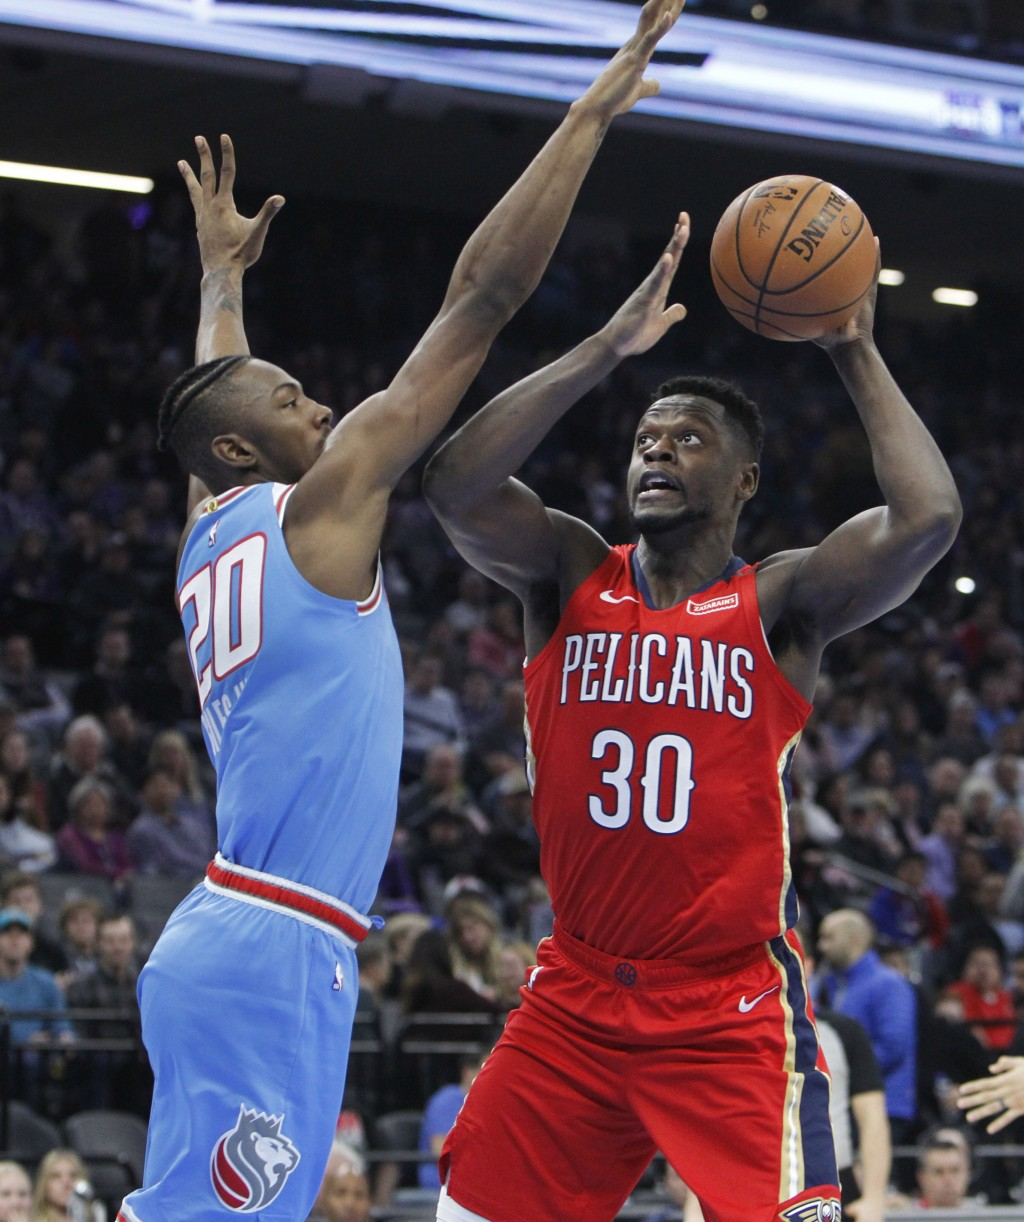 New Orleans Pelicans forward Julius Randle (30) shoots over Sacramento Kings forward Harry Giles (20) during the first half of an NBA basketball game